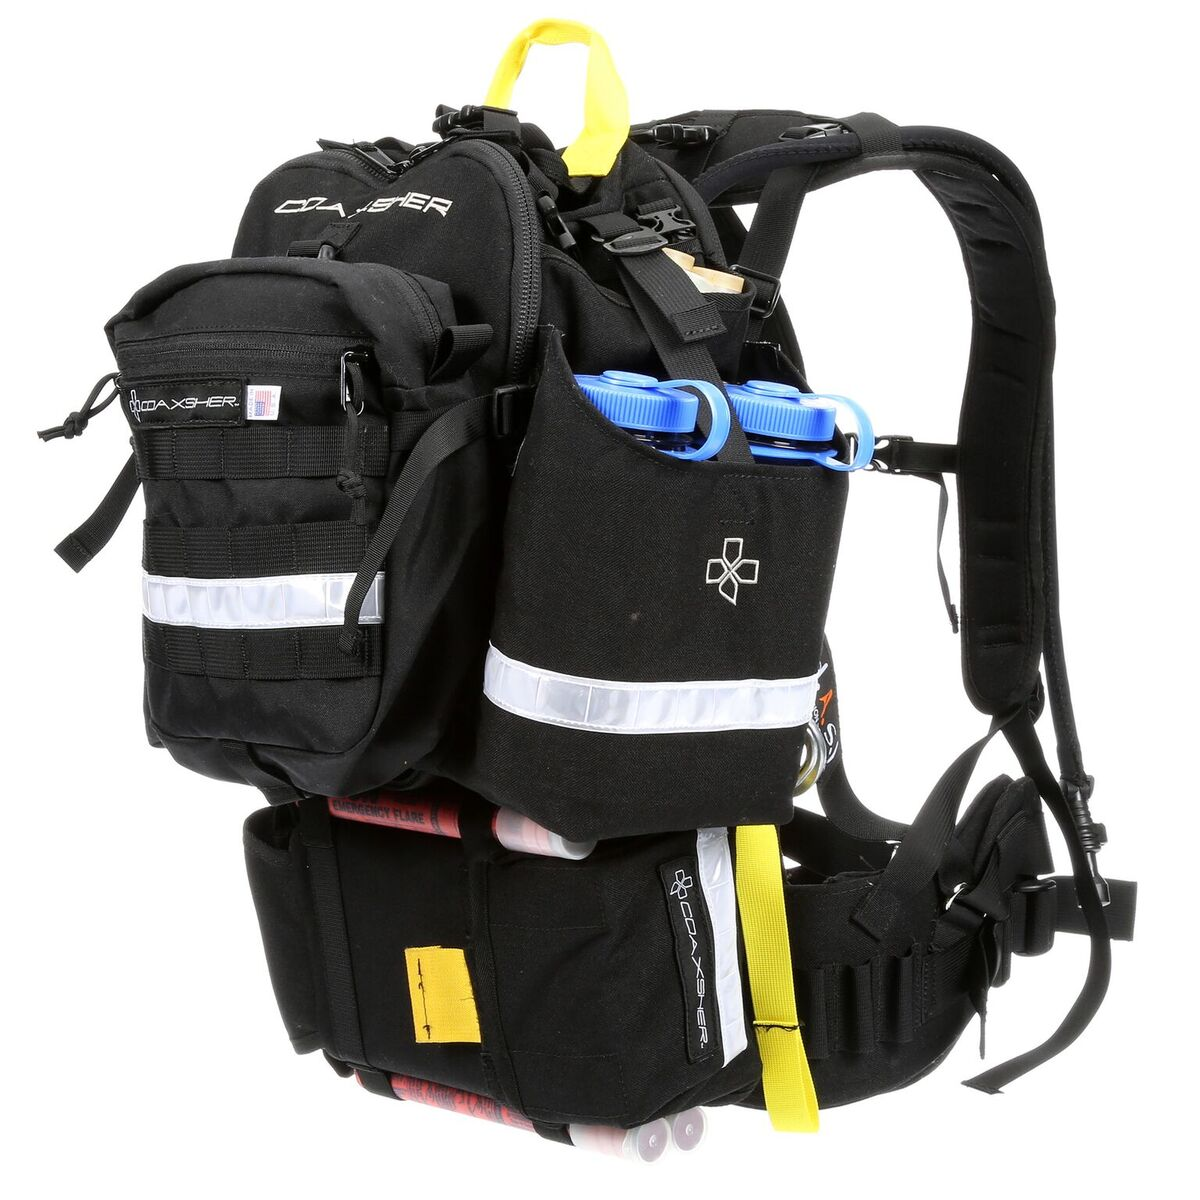 2017 Ranger Wildland Fire Pack - Wildland Warehouse | Gear for Wildland Fire